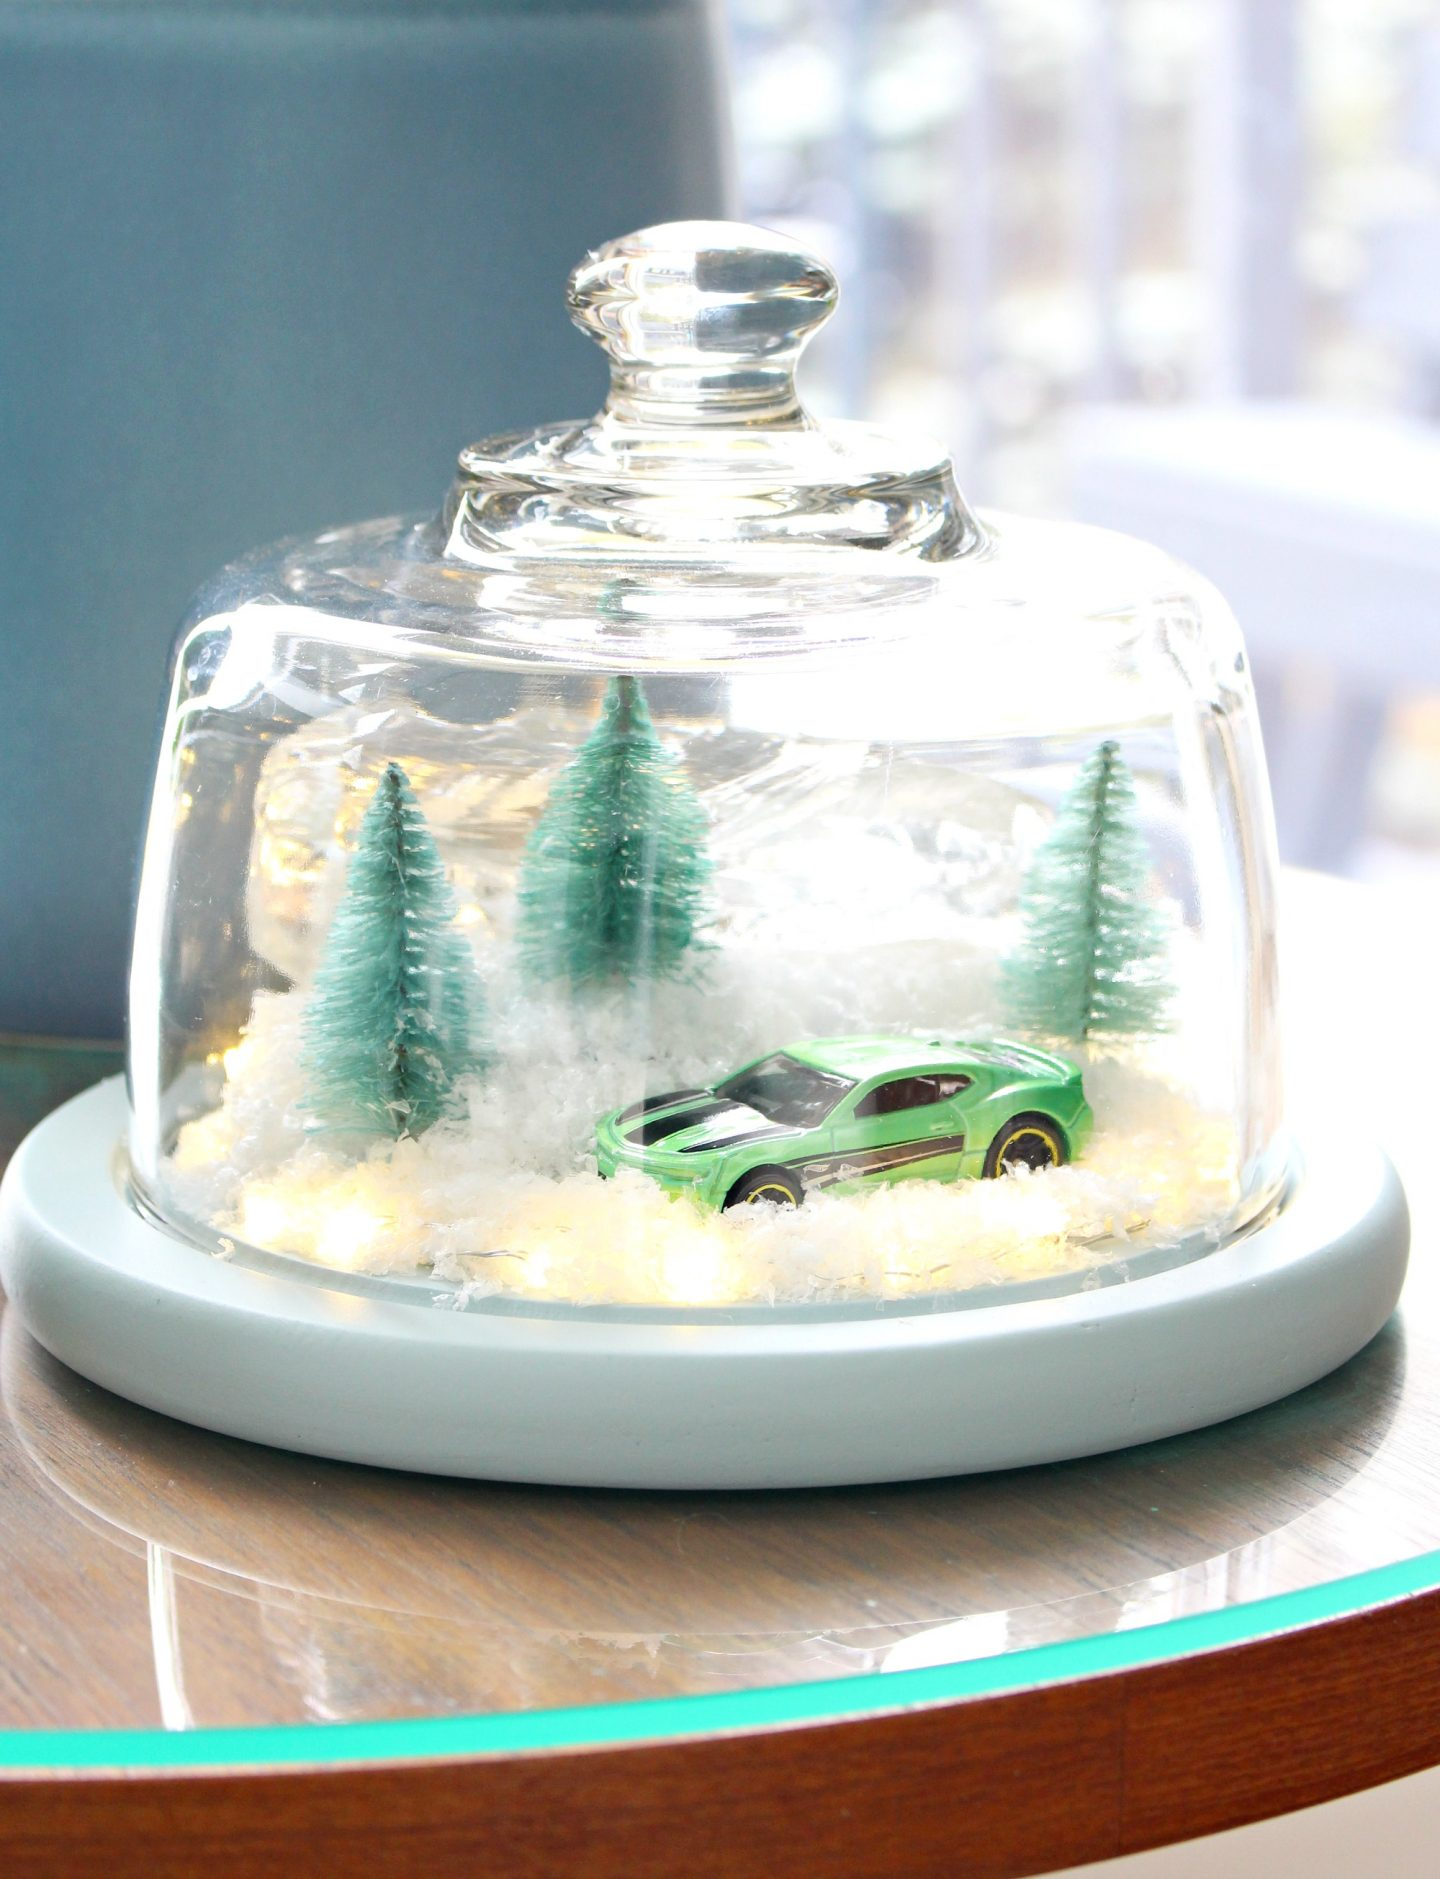 DIY Winter Diorama | aka The Camaro Cloche. Make this easy winter decor using a thrifted cheese cloche. #diy #holidaydecor